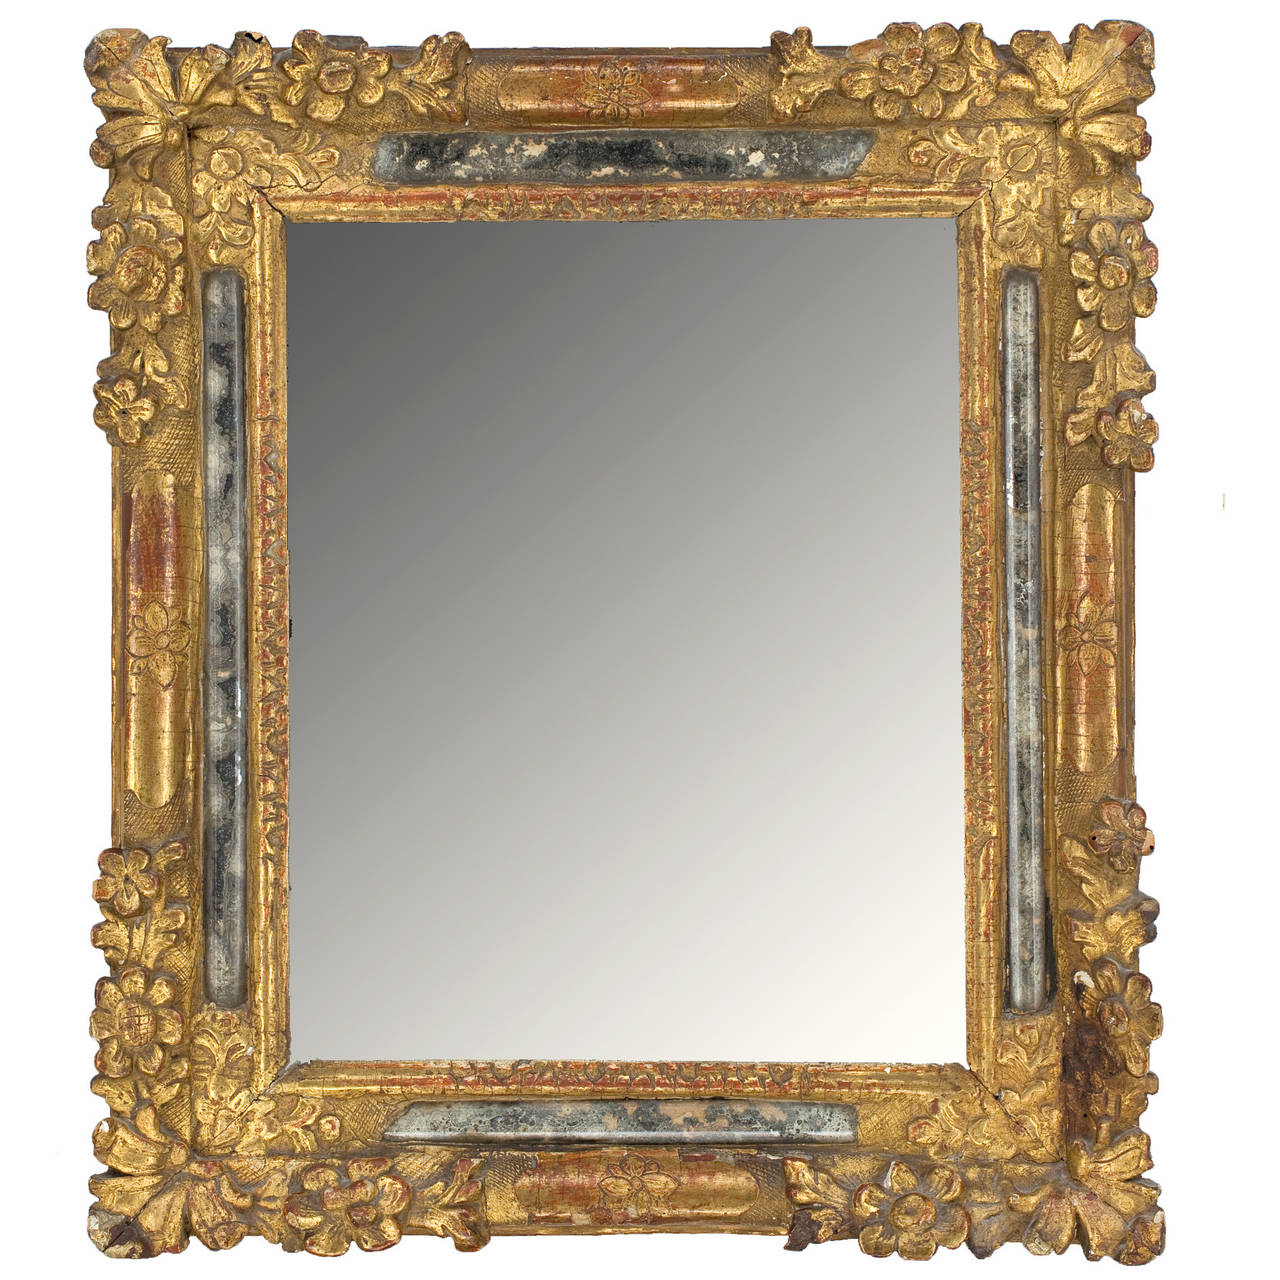 18th century french louis xiv mirror for sale at 1stdibs for Rococo style frame